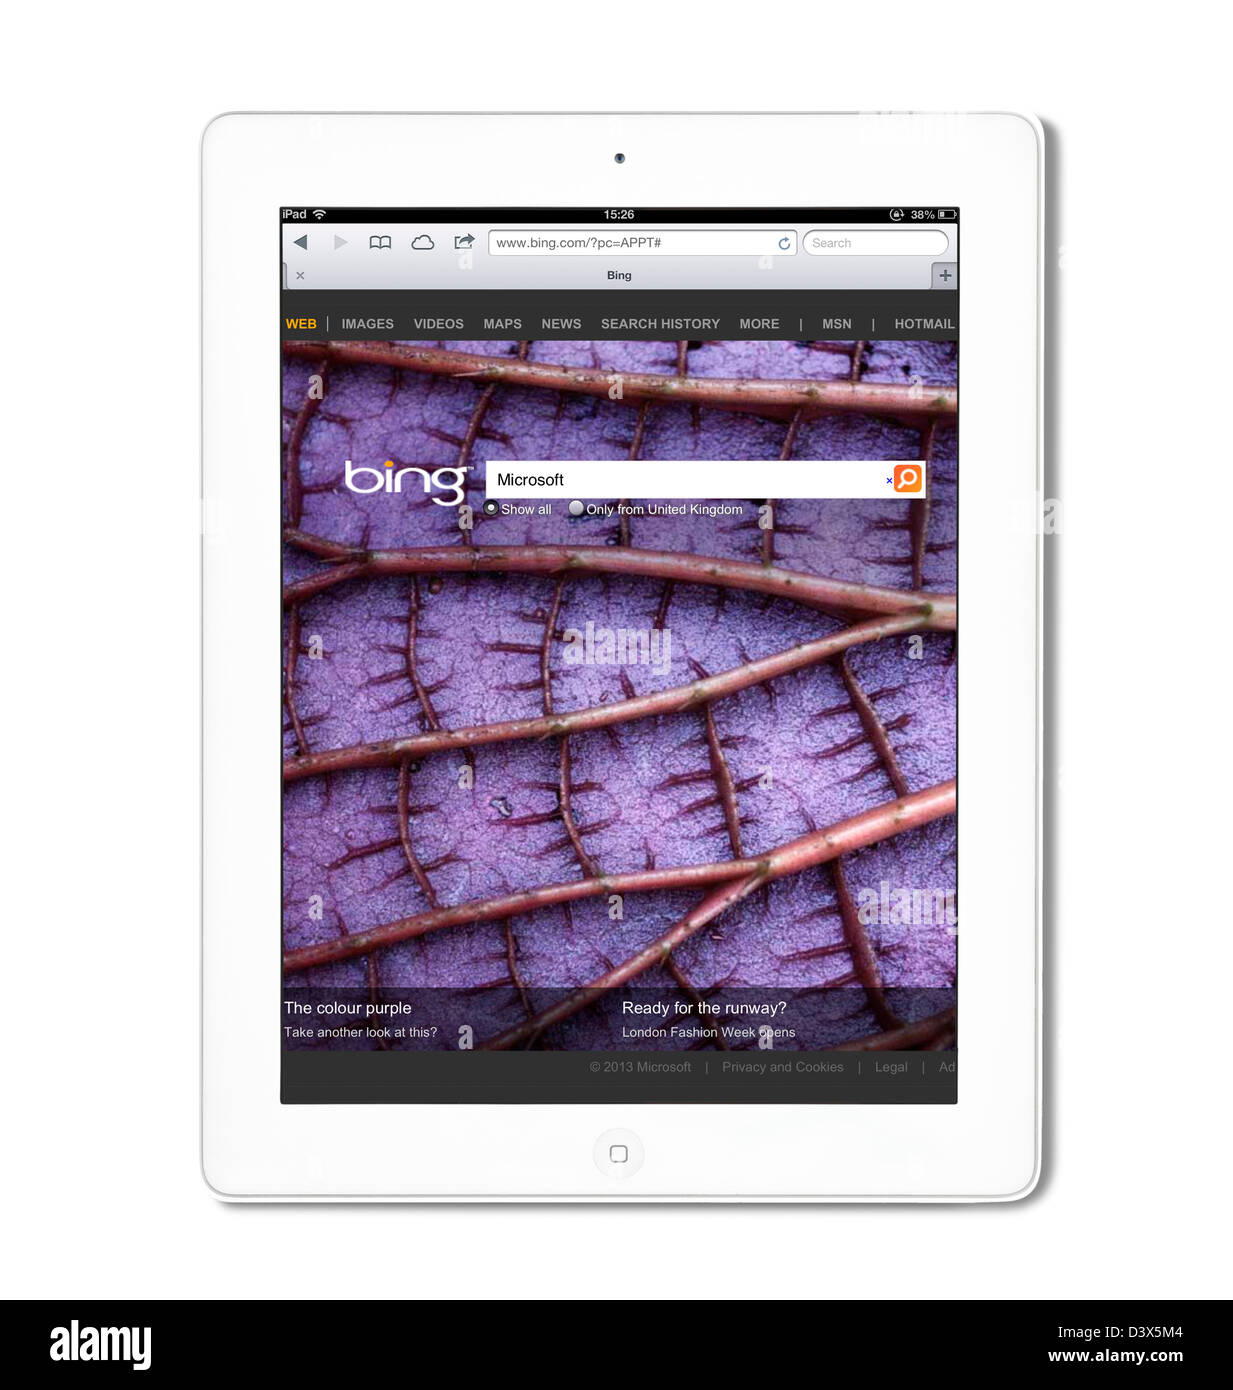 Bing search viewed on a 4th generation iPad - Stock Image